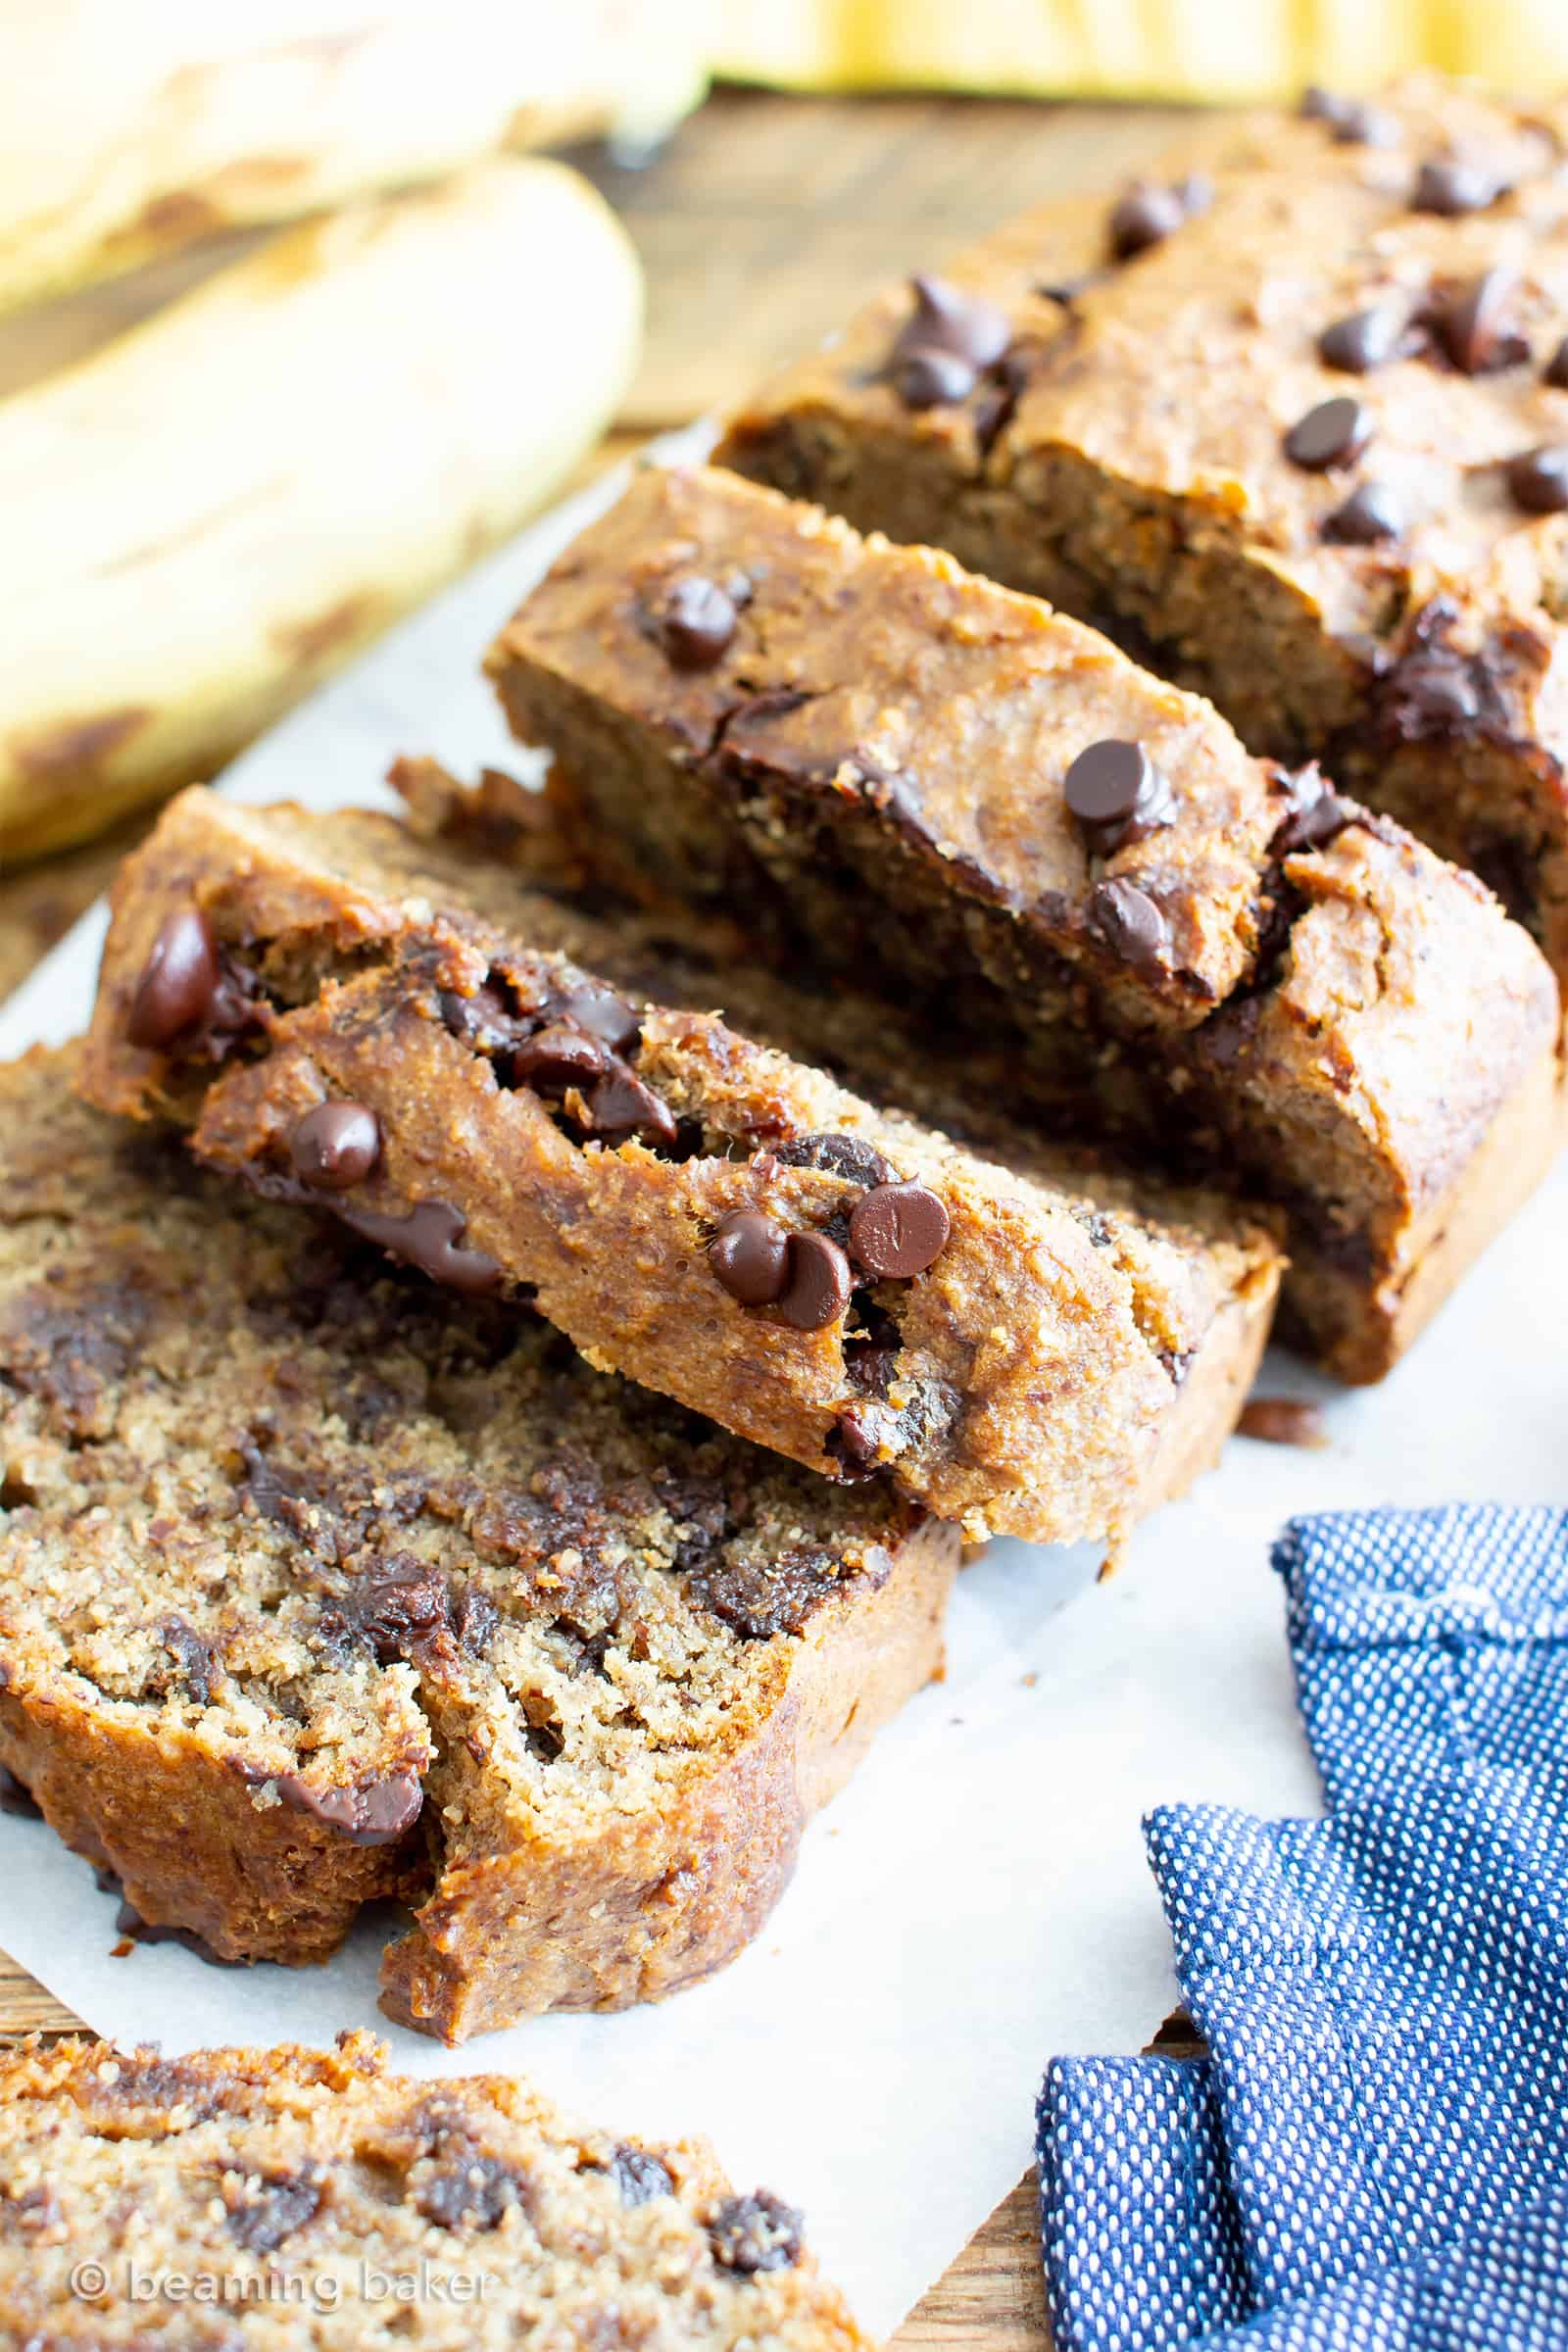 Best Moist Chocolate Chip Banana Bread Recipe Vegan Gluten Free One Bowl Beaming Baker